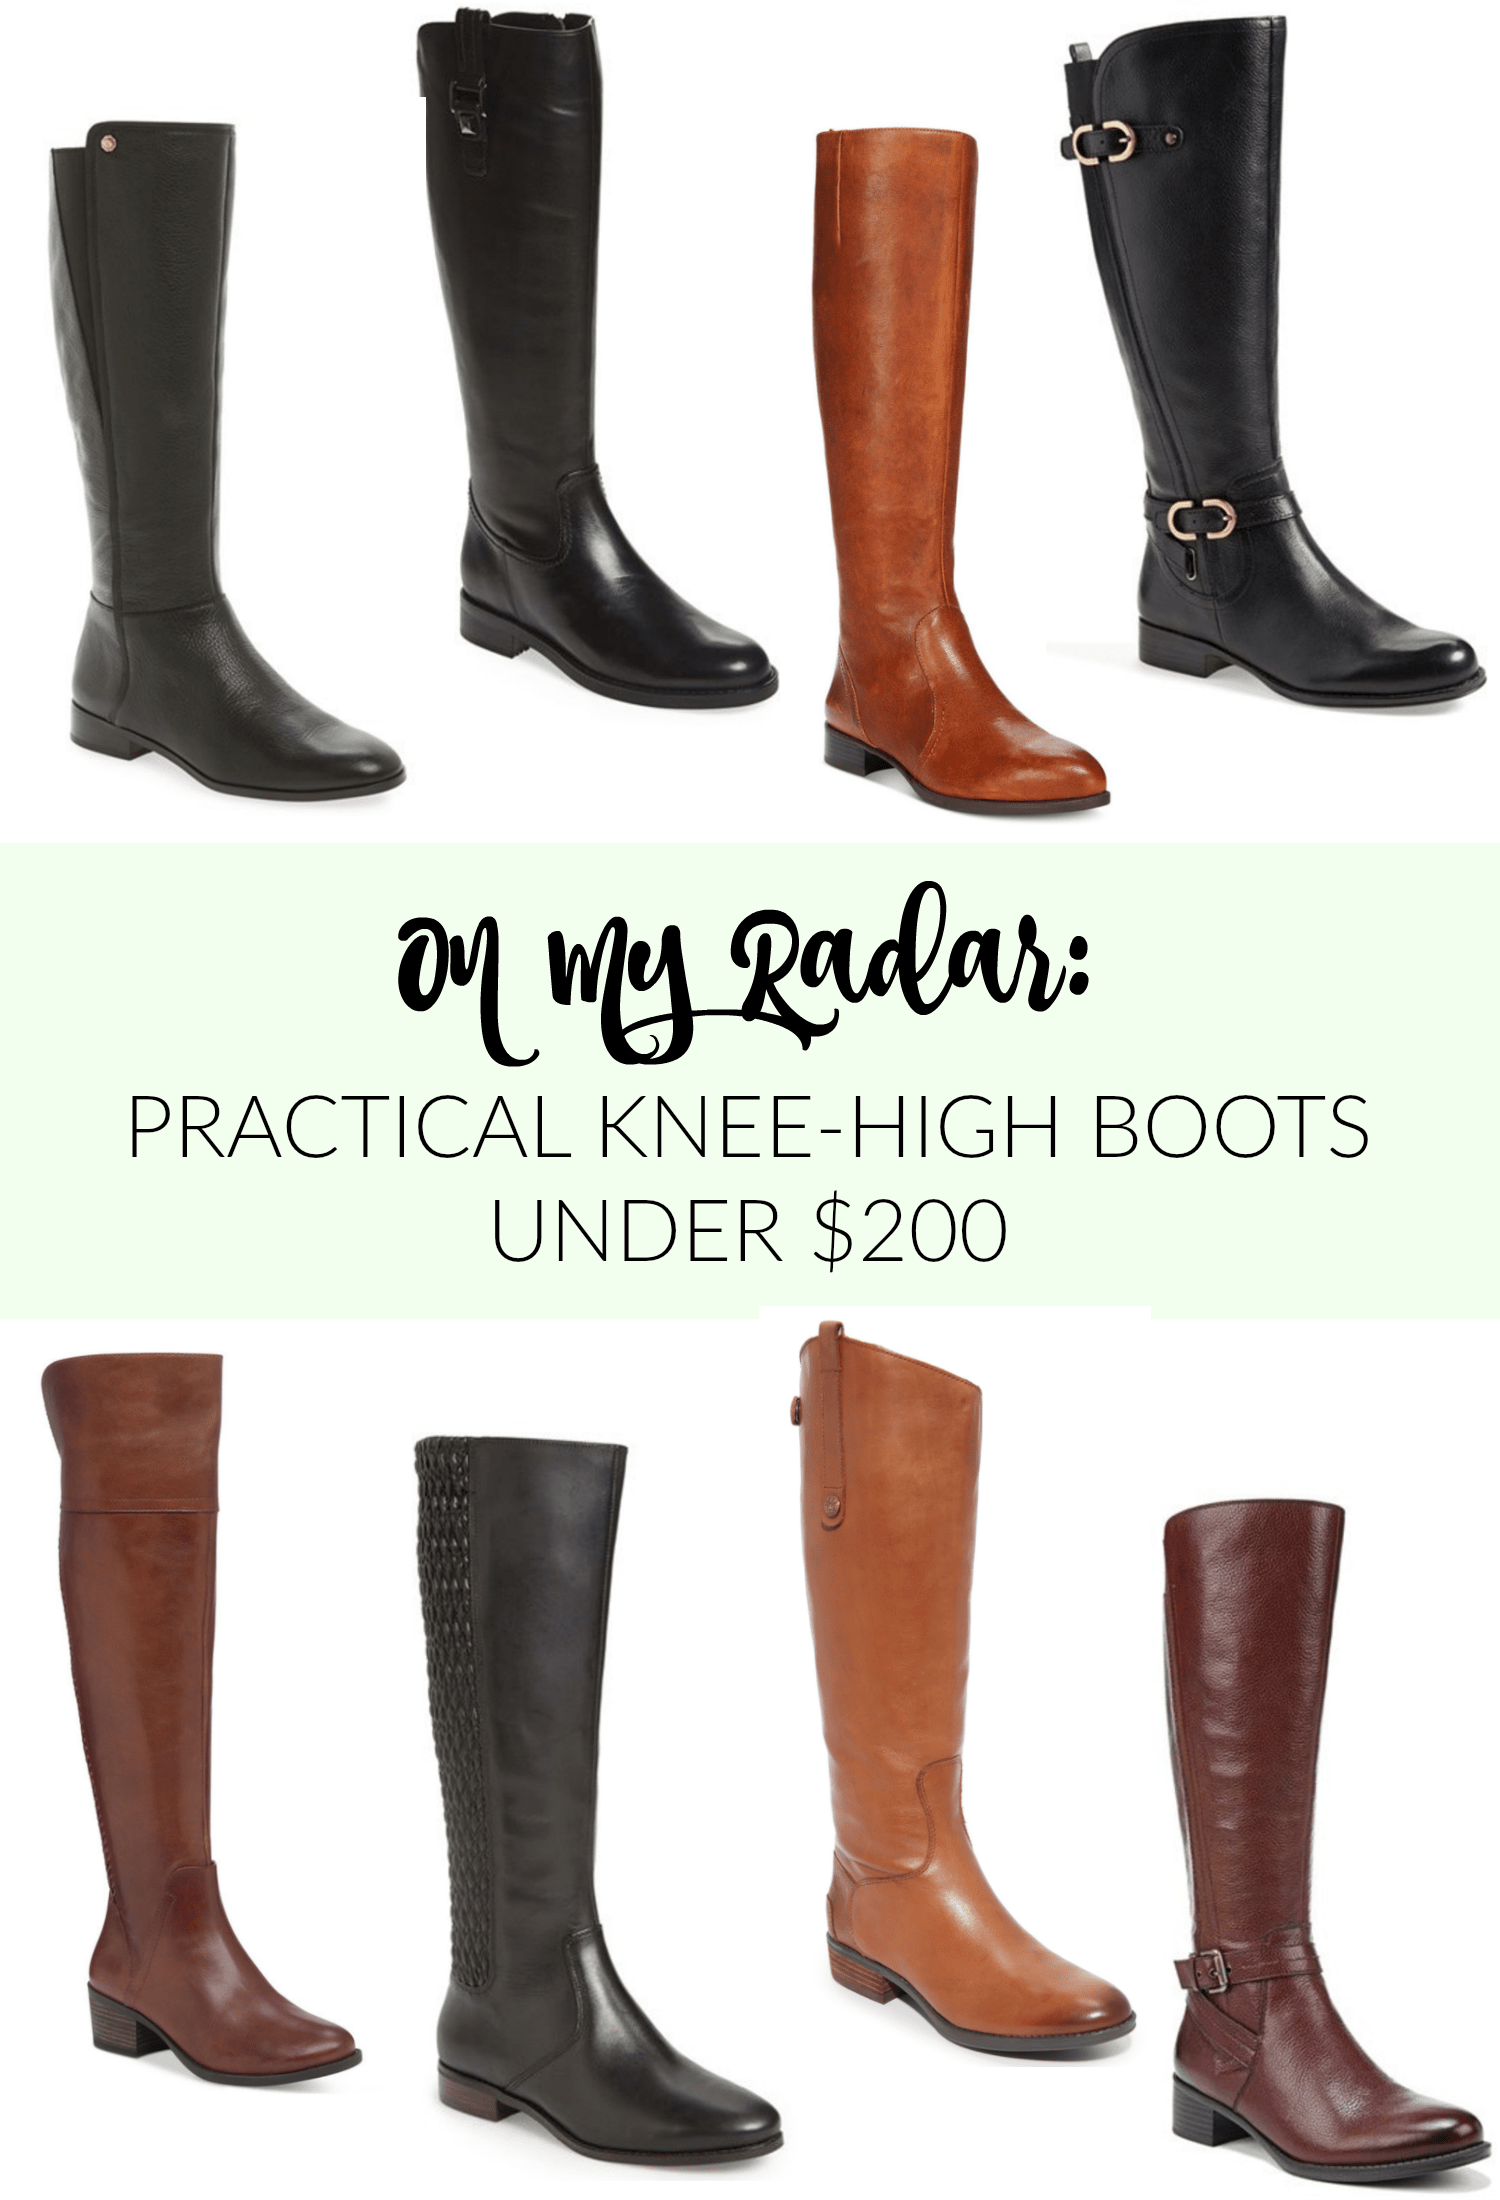 Practical Knee-High Boots Under $200